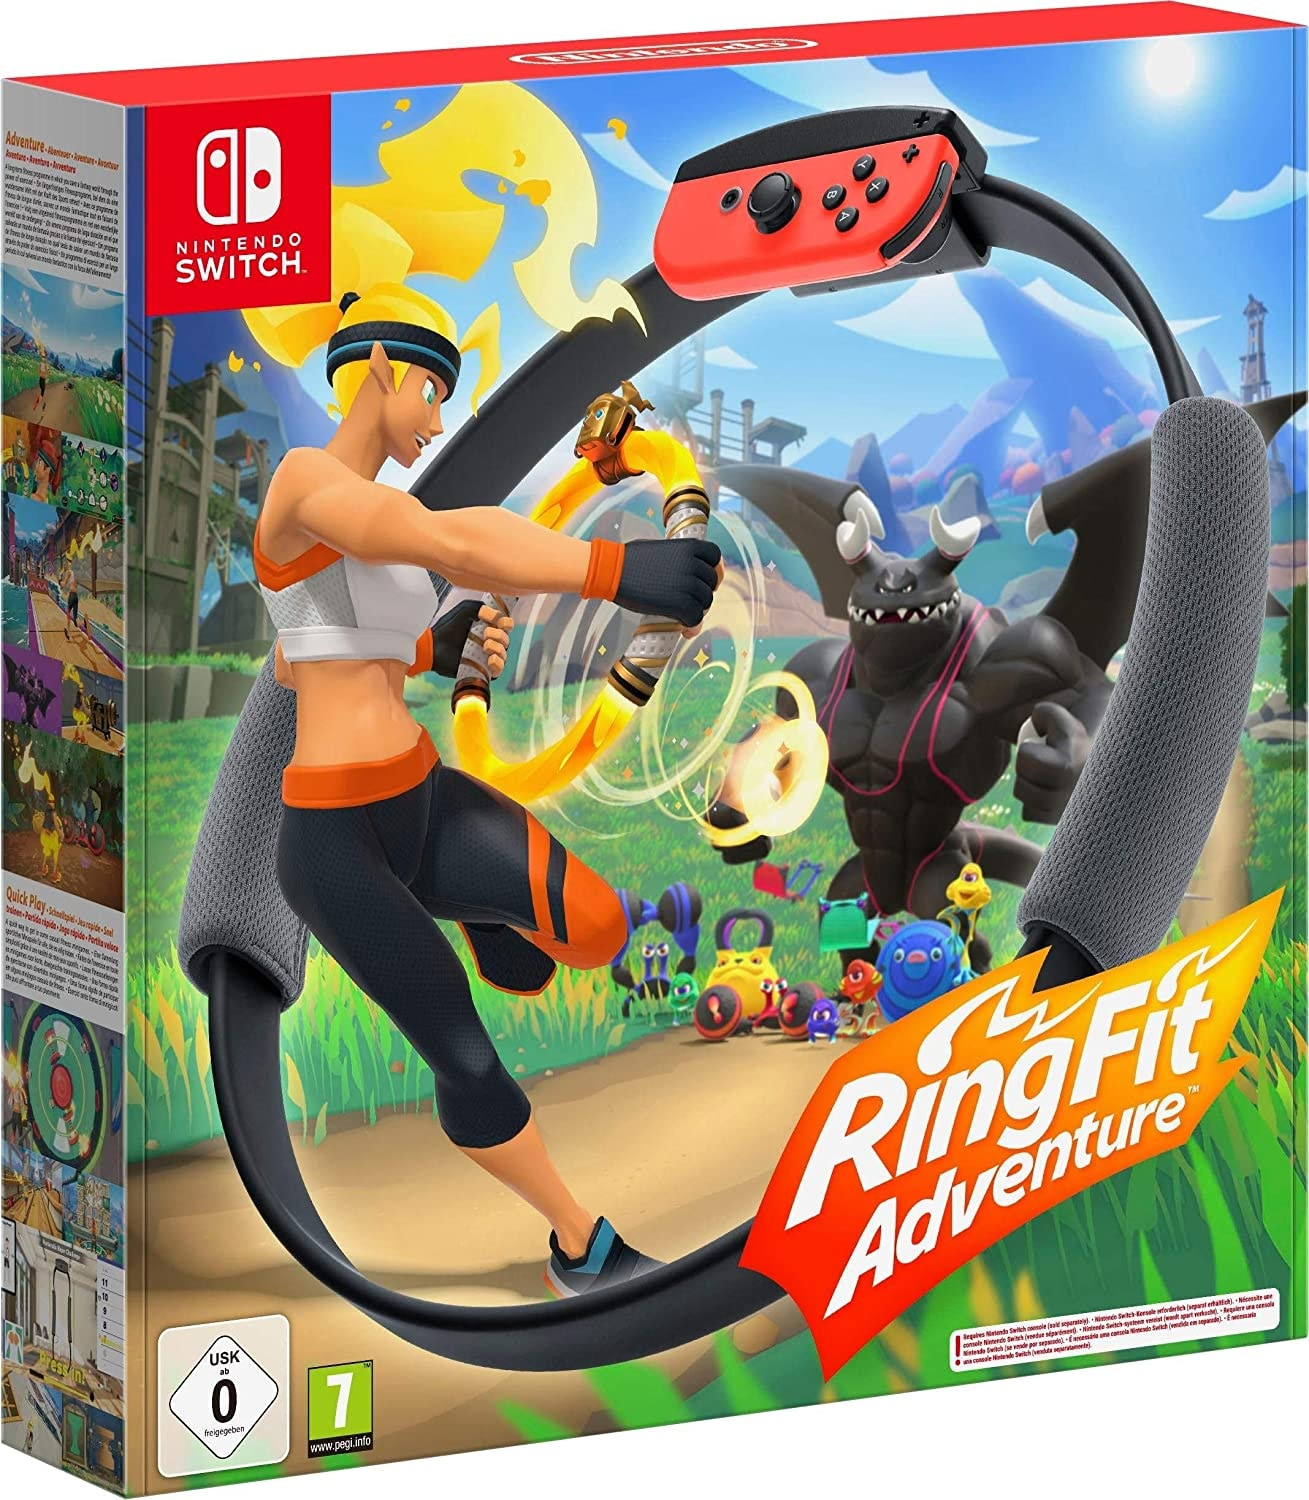 Nintendo Switch without Games FItness Ring Set Fit Adventure Ring Fit Exercise Yoga Ring+Leg Band Black - 1